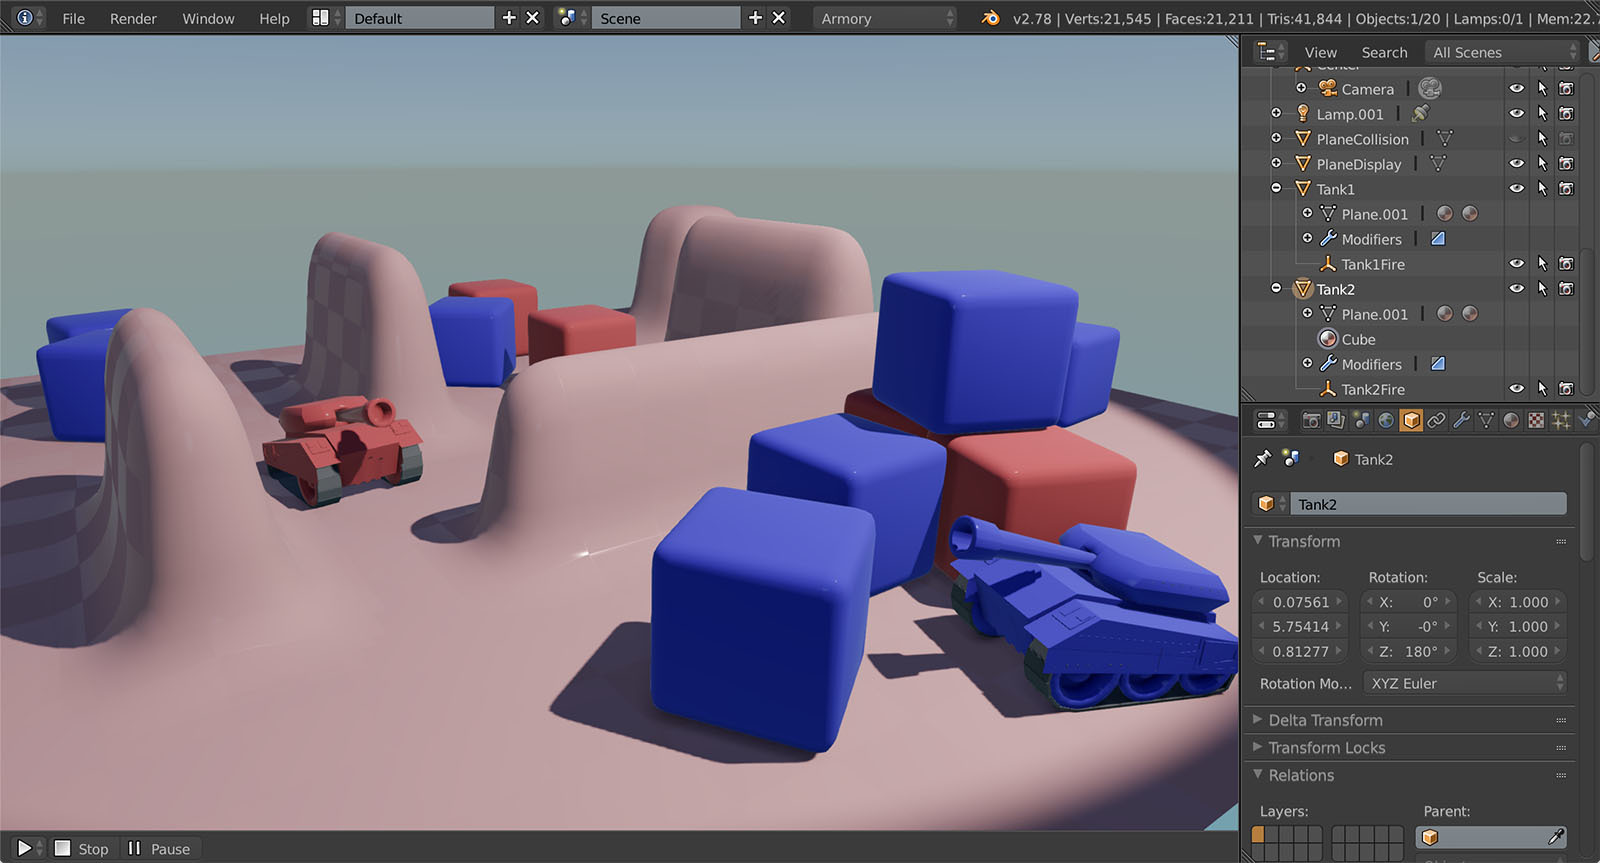 Build 10 is out! - General - Armory 3D